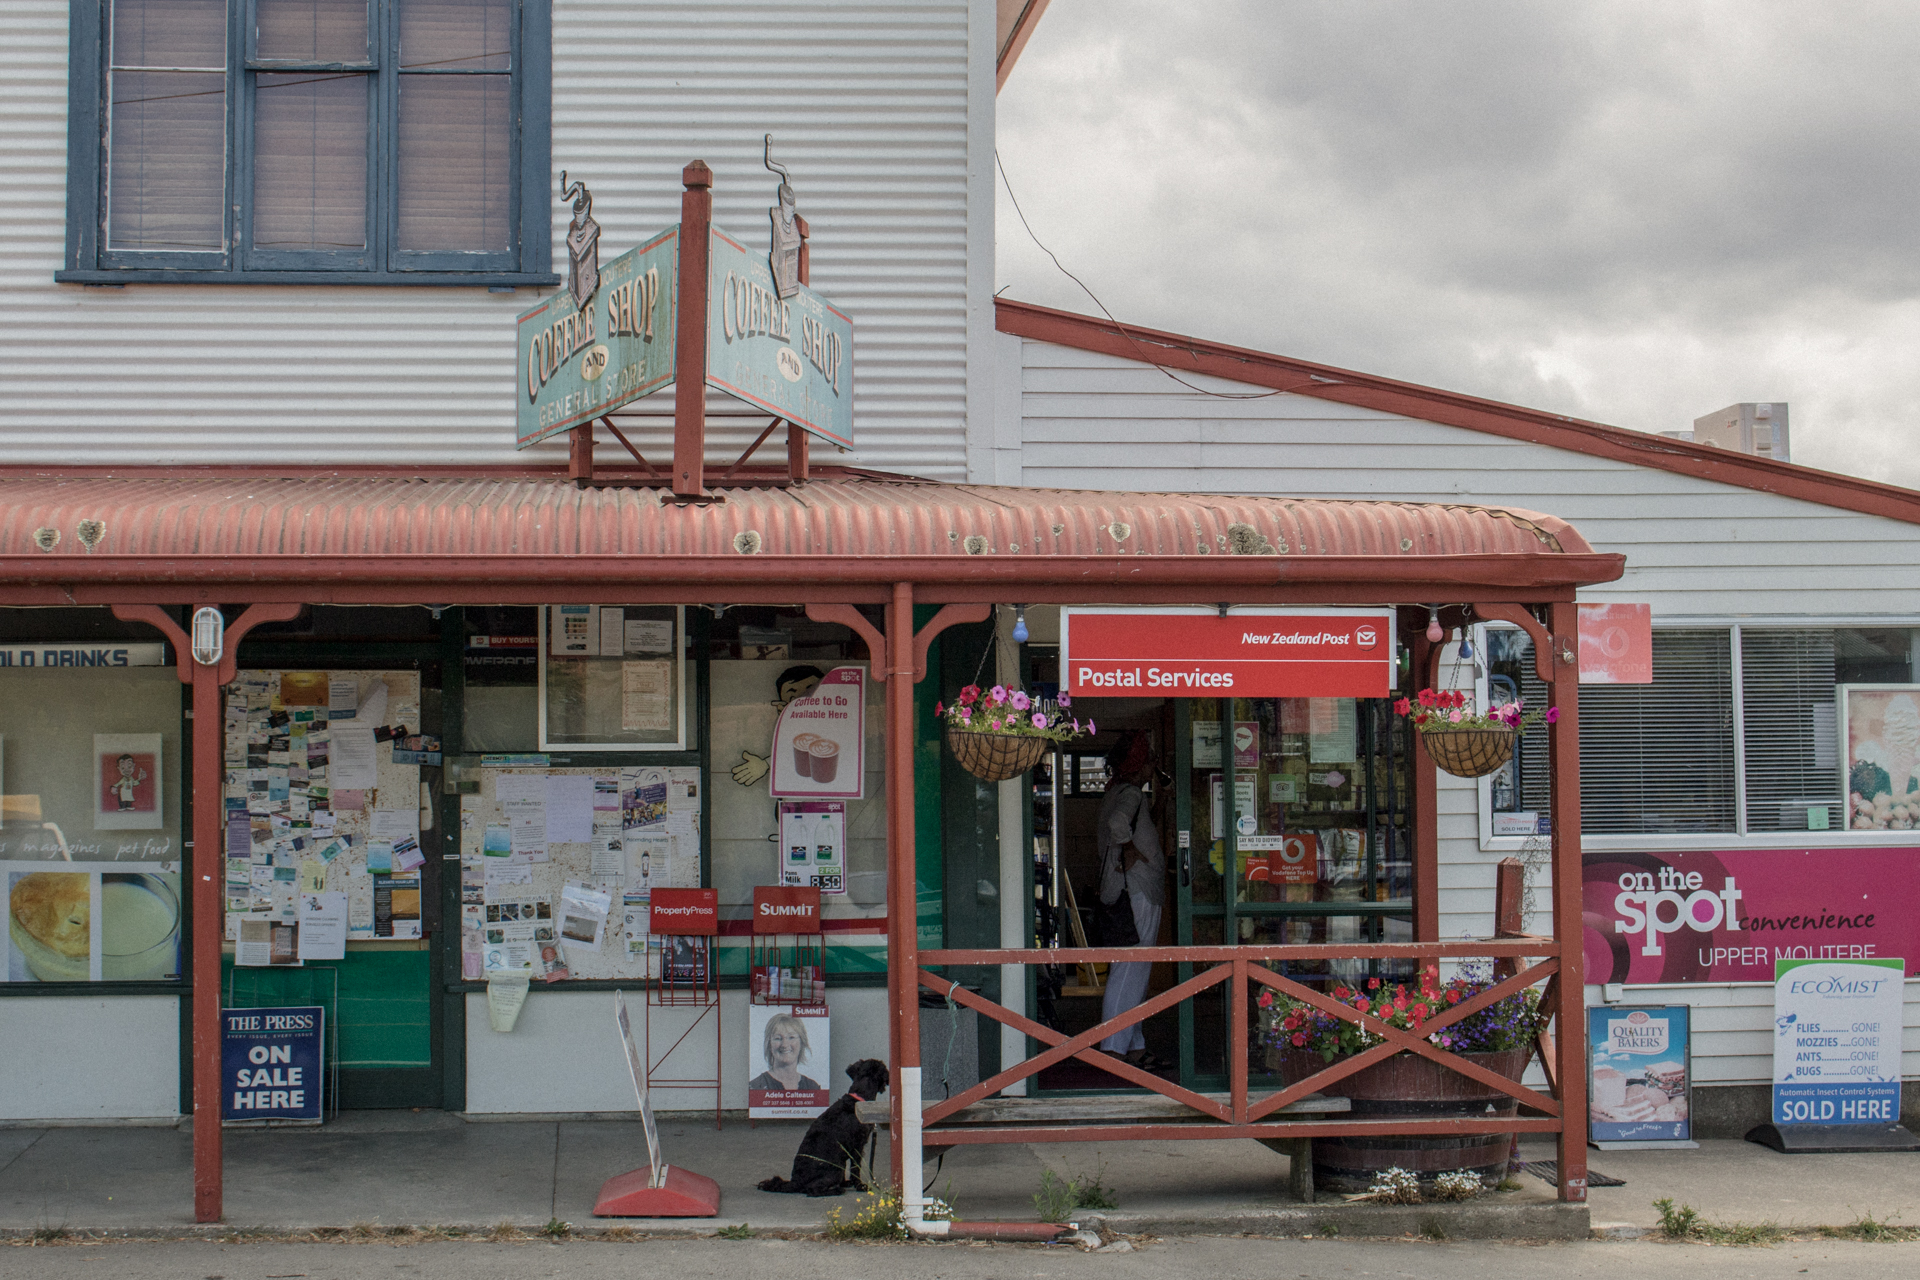 Upper Moutere Store